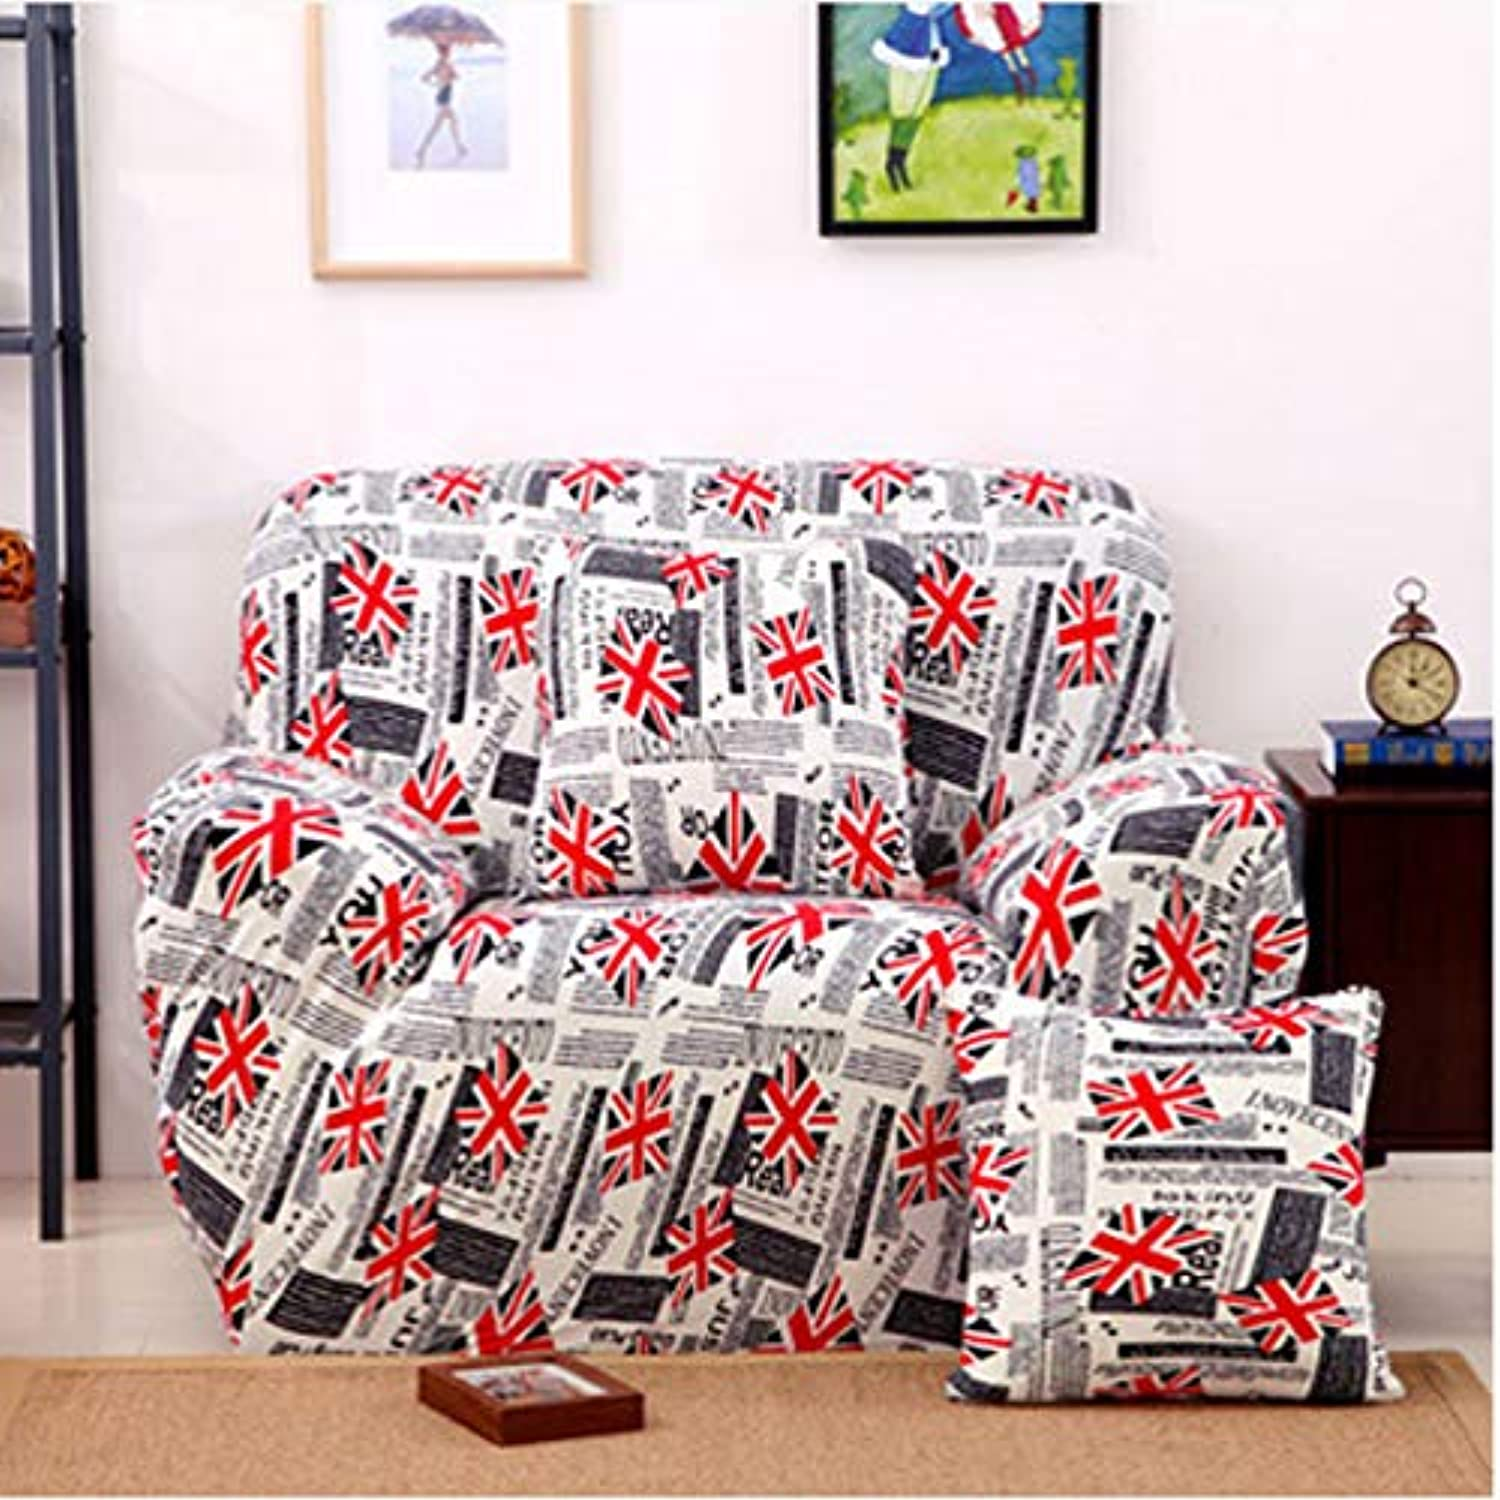 Vivona One Seater Textile Spandex Strench Flexible Printed Vivona astic Sofa Couch Cover Furniture Predector - (color   07)